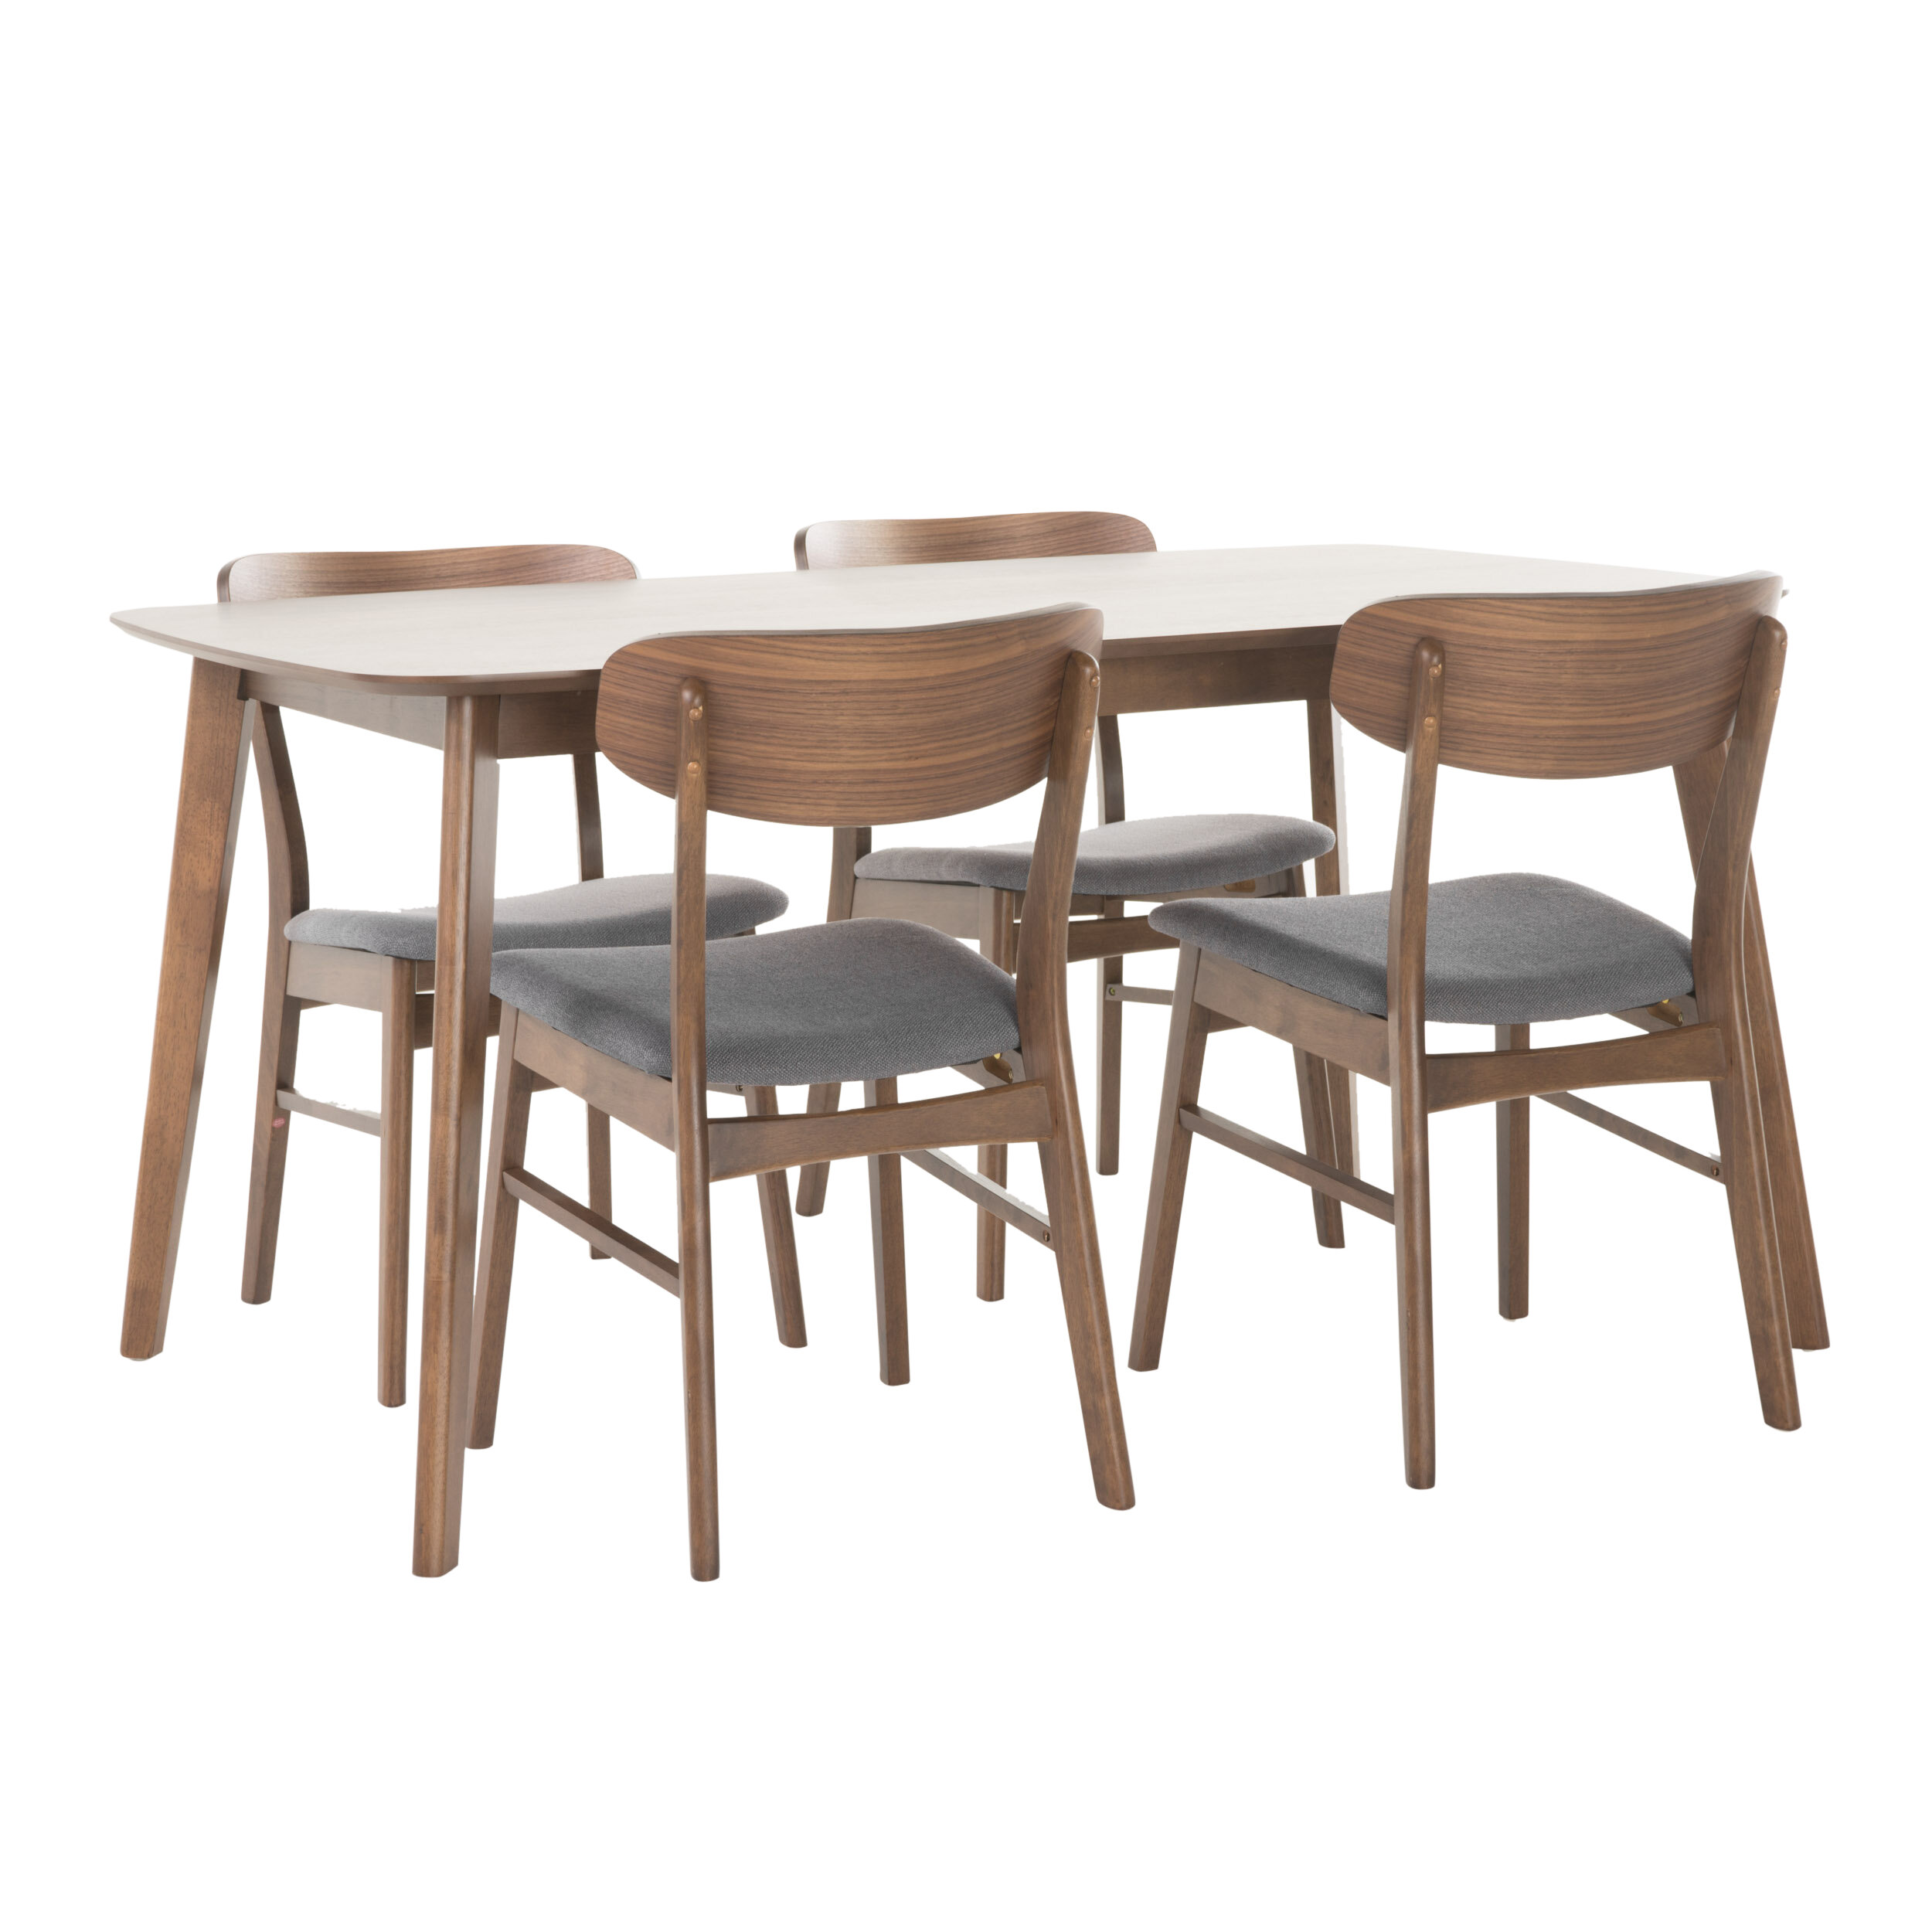 Shop Luxurious Modern Design Stainless Steel Dining Set: Brayden Studio Kitchen & Dining Furniture